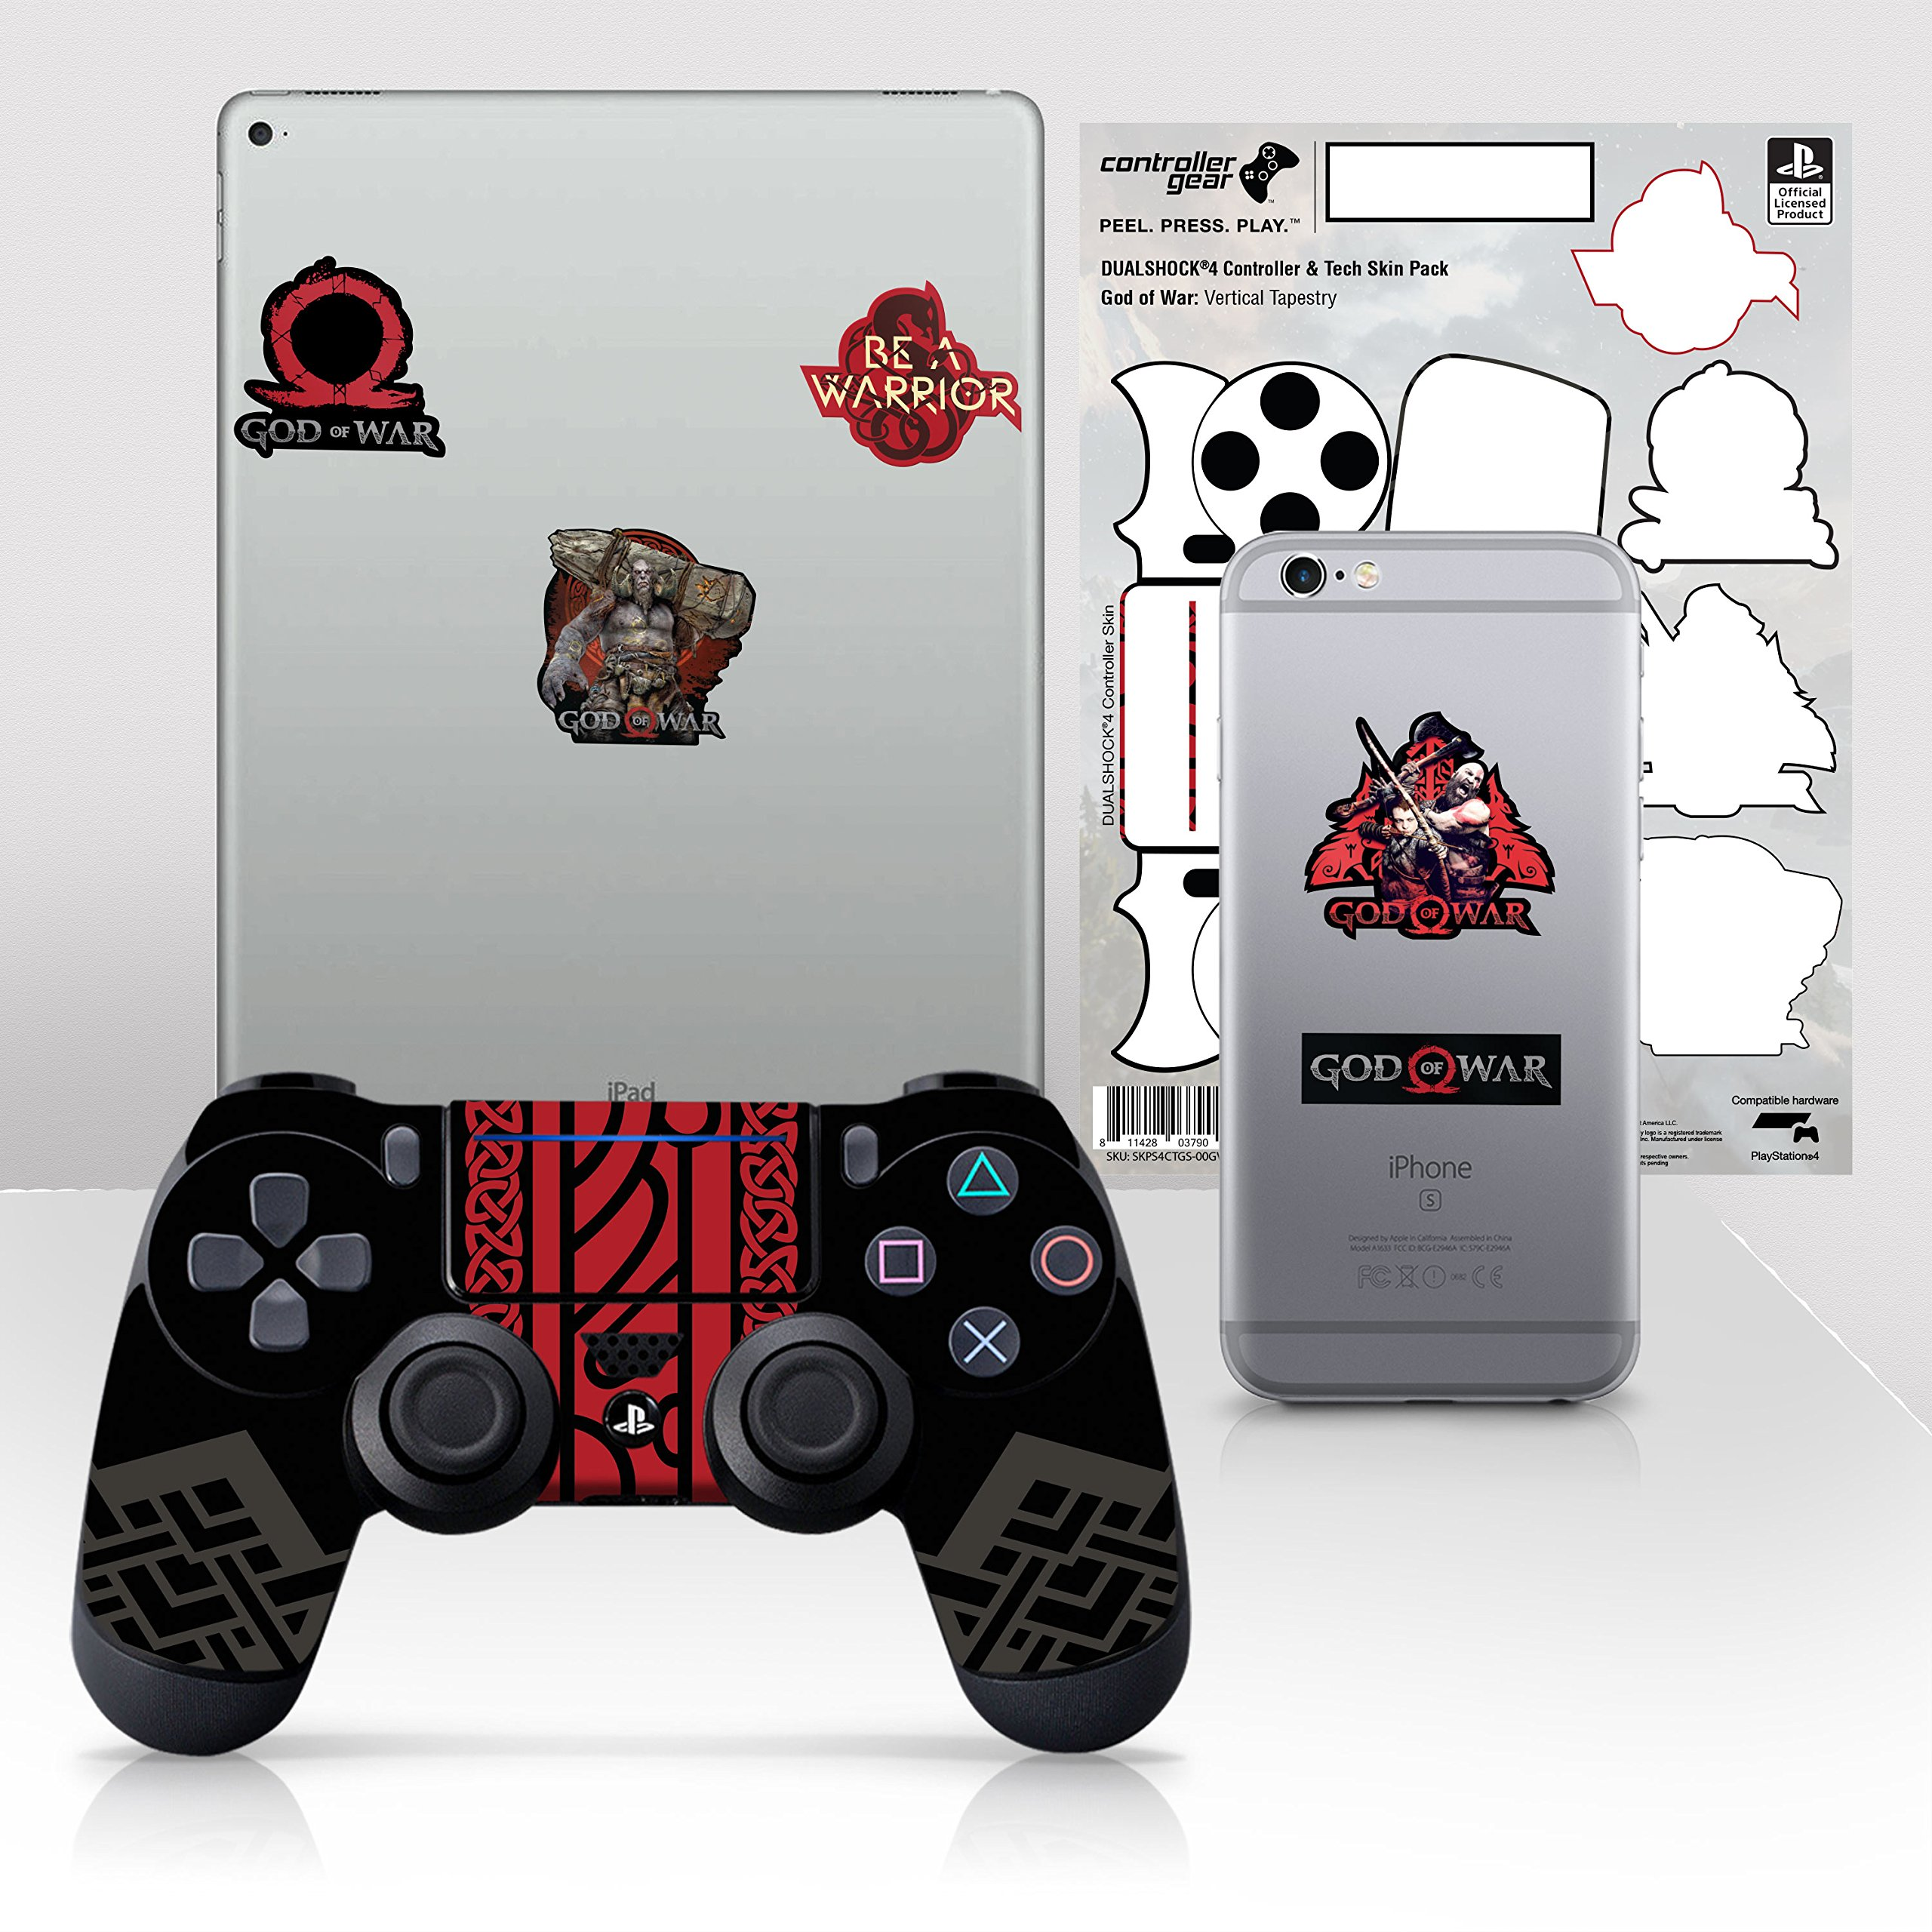 Controller Gear con licencia oficial God of War Dualshock 4 Wireless Controller y Tech Skin Set Vertical Tapestry - PlayStation 4